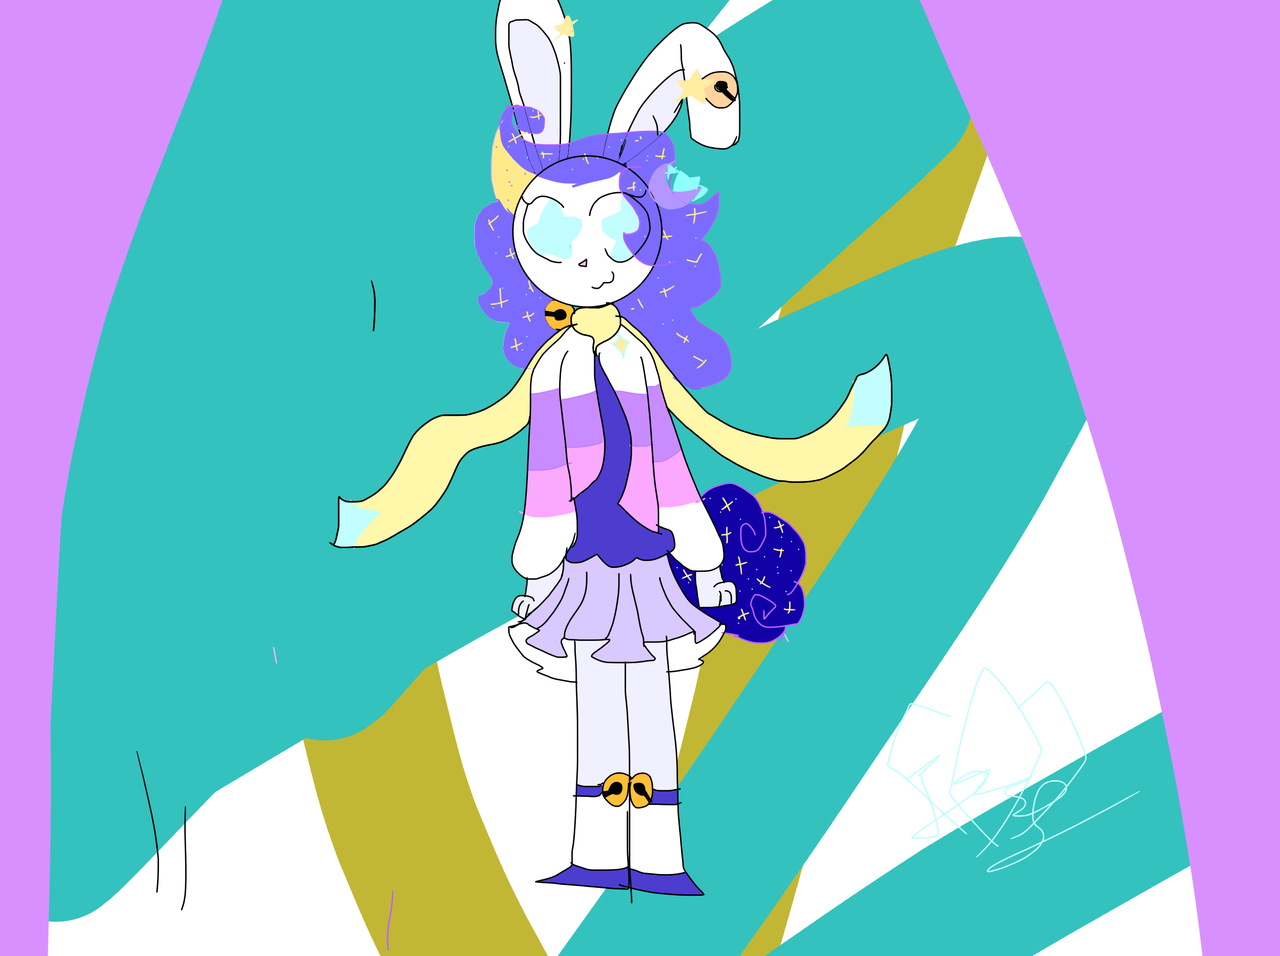 izzy the happy hare! Illust of Hoshi travels the cosmos medibangpaint